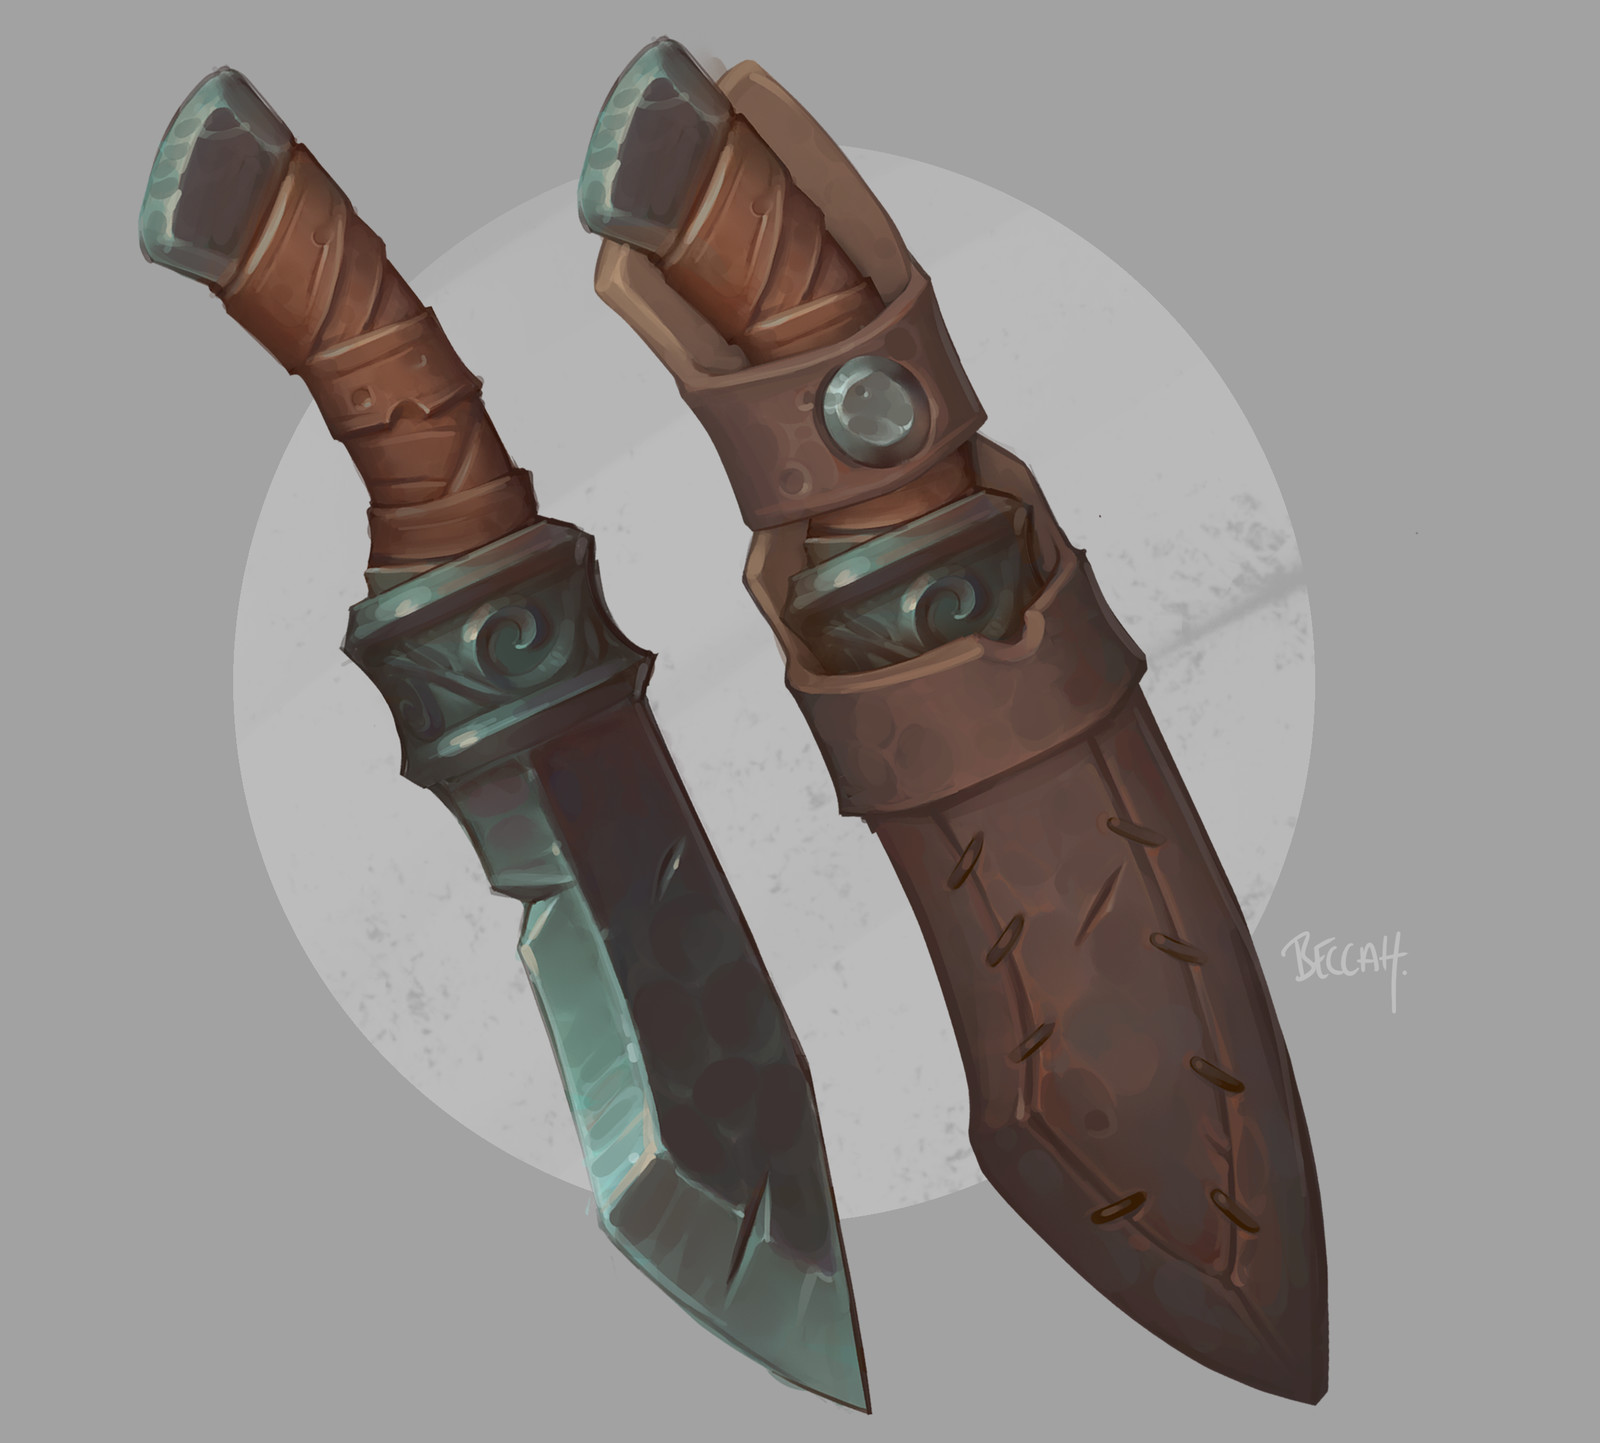 Magnus's Knife with Process